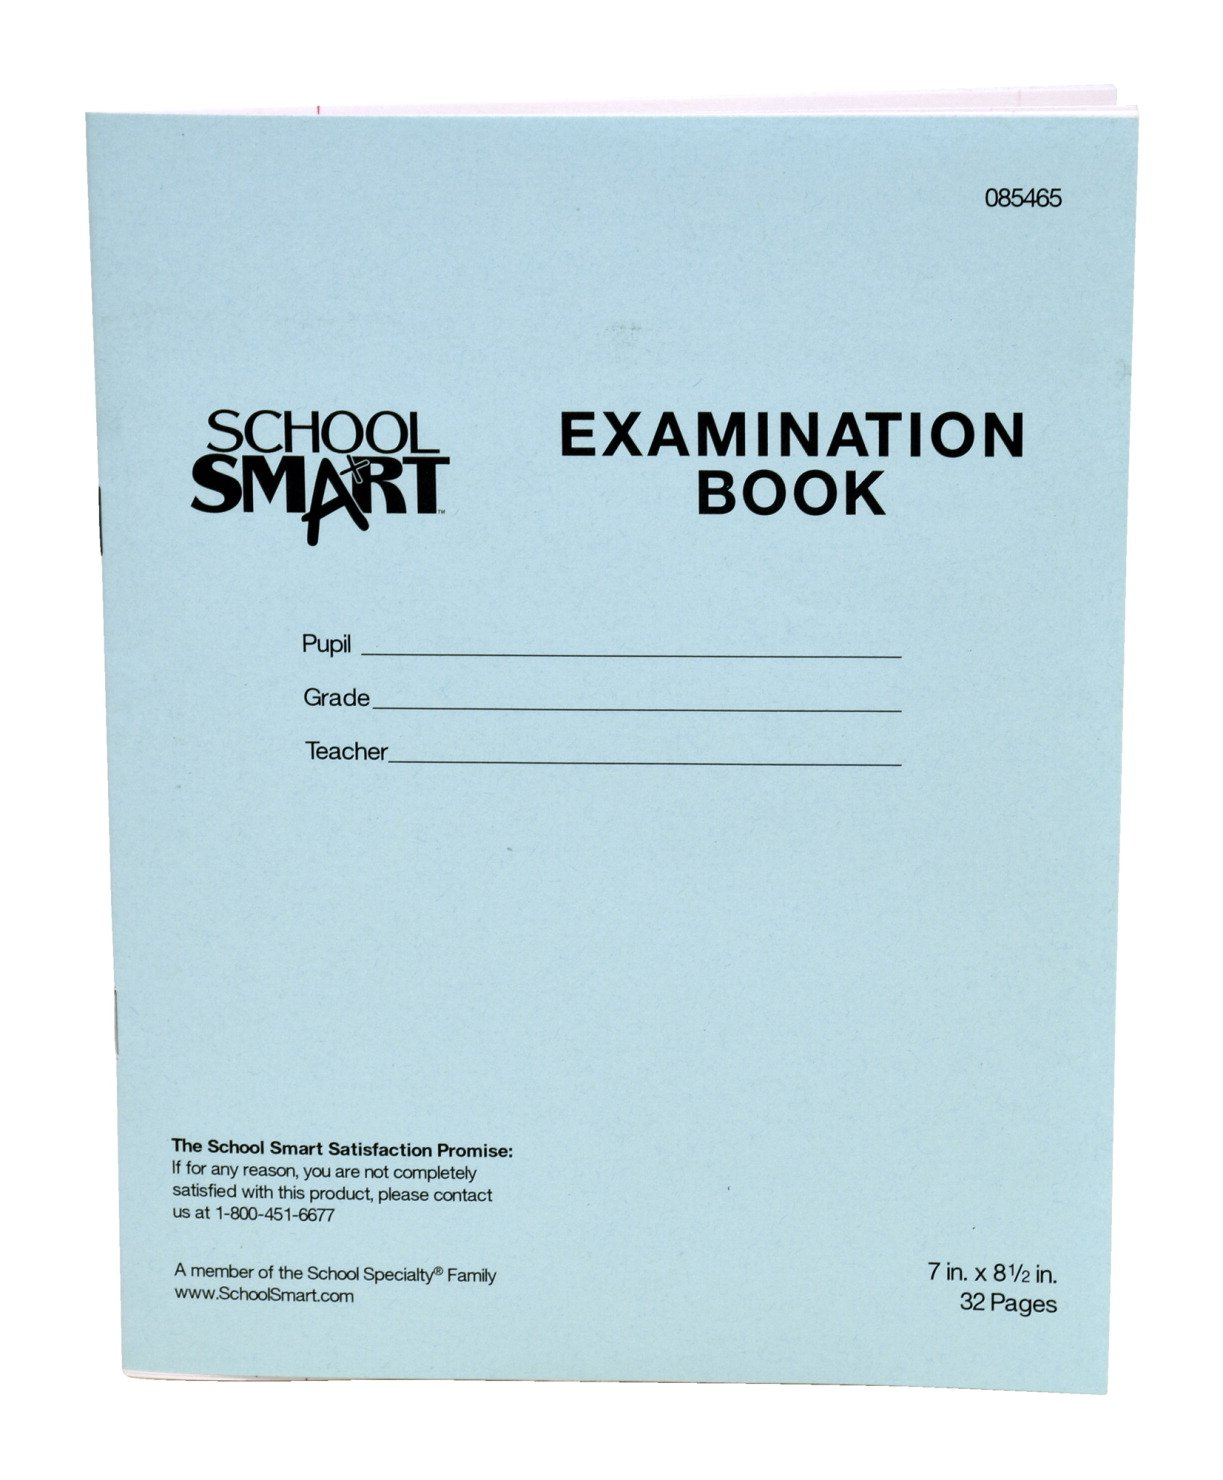 School Smart Examination Blue Book with 32 Pages, 7 x 8-1/2 Inches, Pack of 50 Books by School Smart